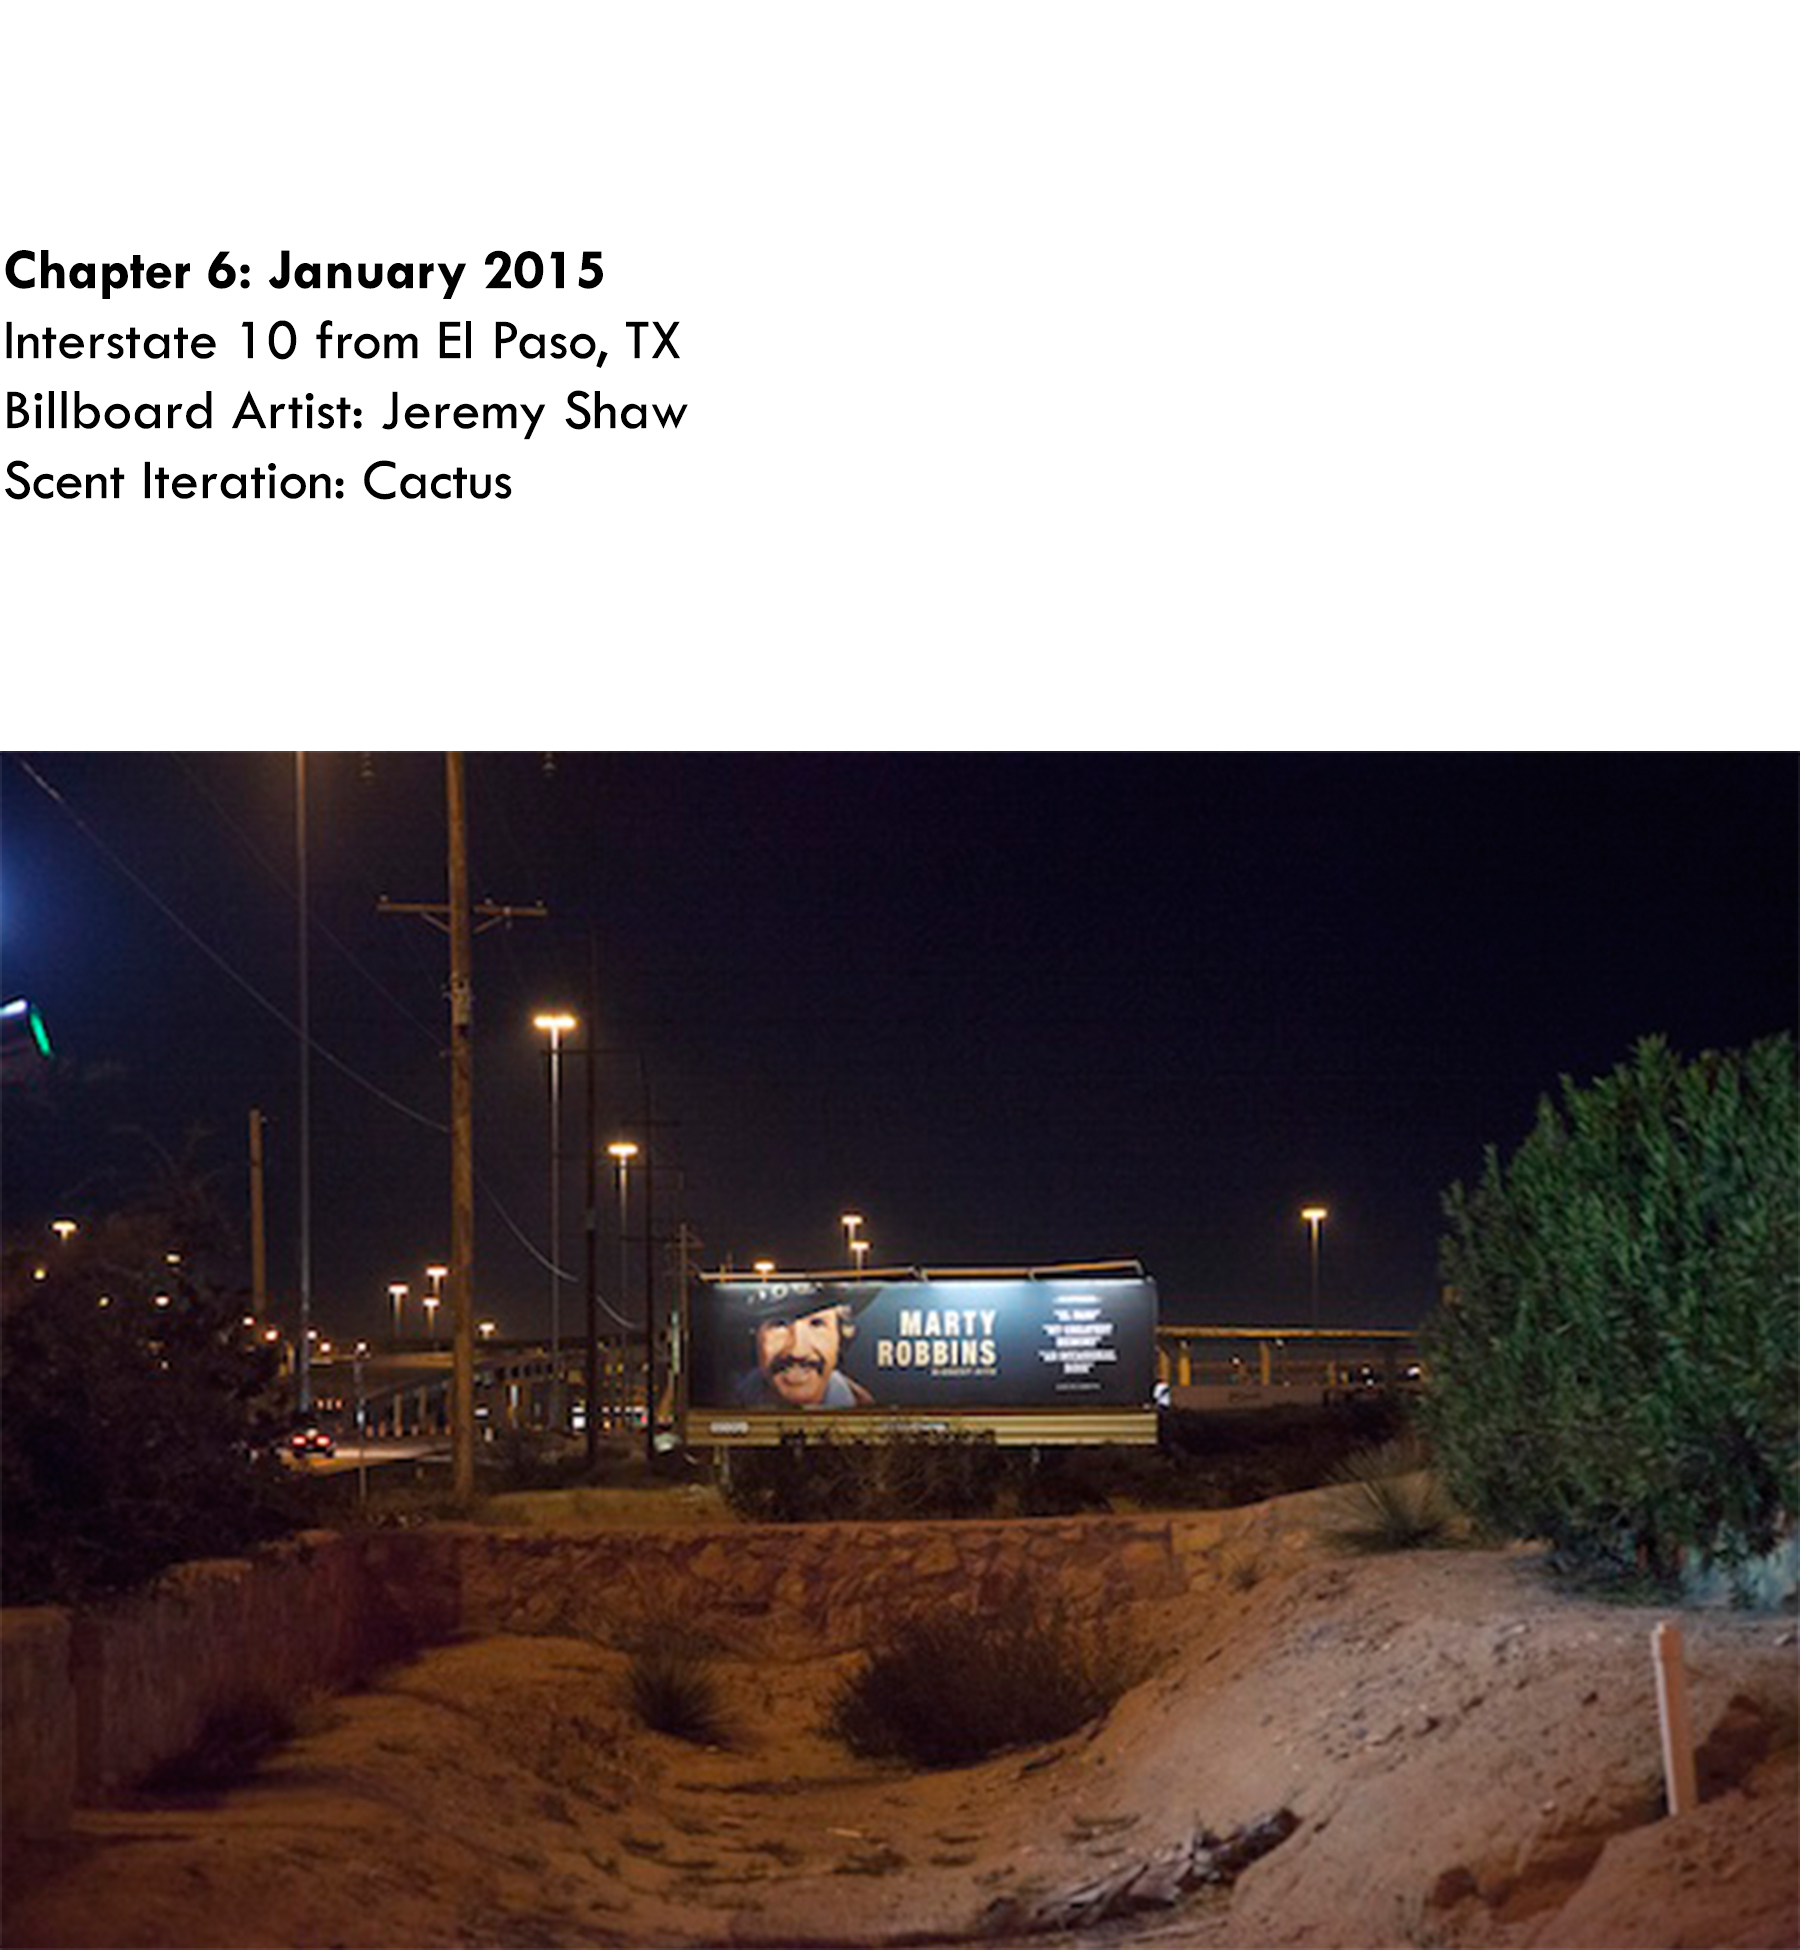 Chapter 6: January 2015, Jeremy Shaw, Interstate 10 from El Paso, TX, Scent Iteration: Cactus